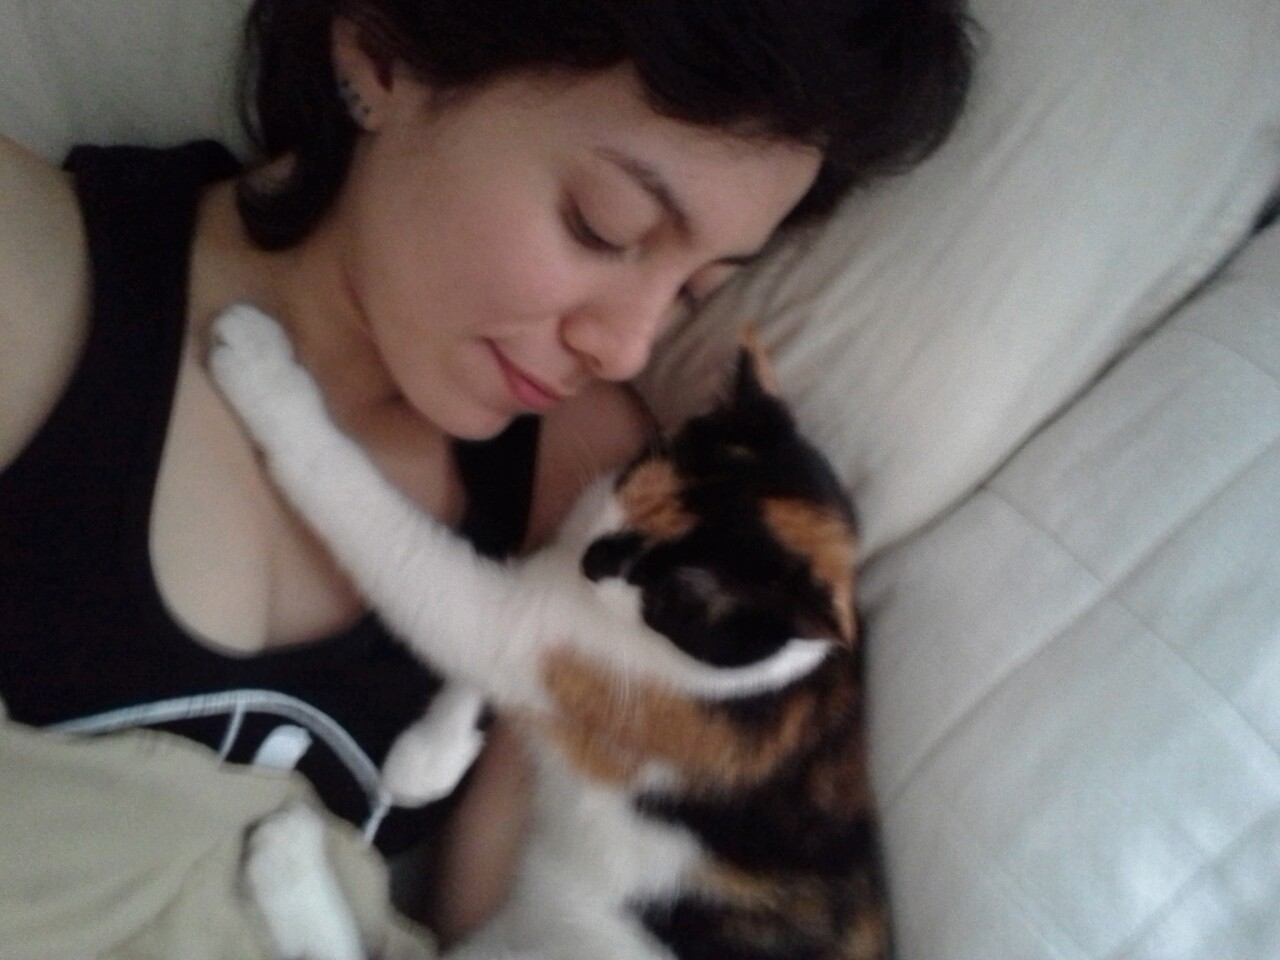 My cat likes hugging. She was trying to spoon or be spooned here.